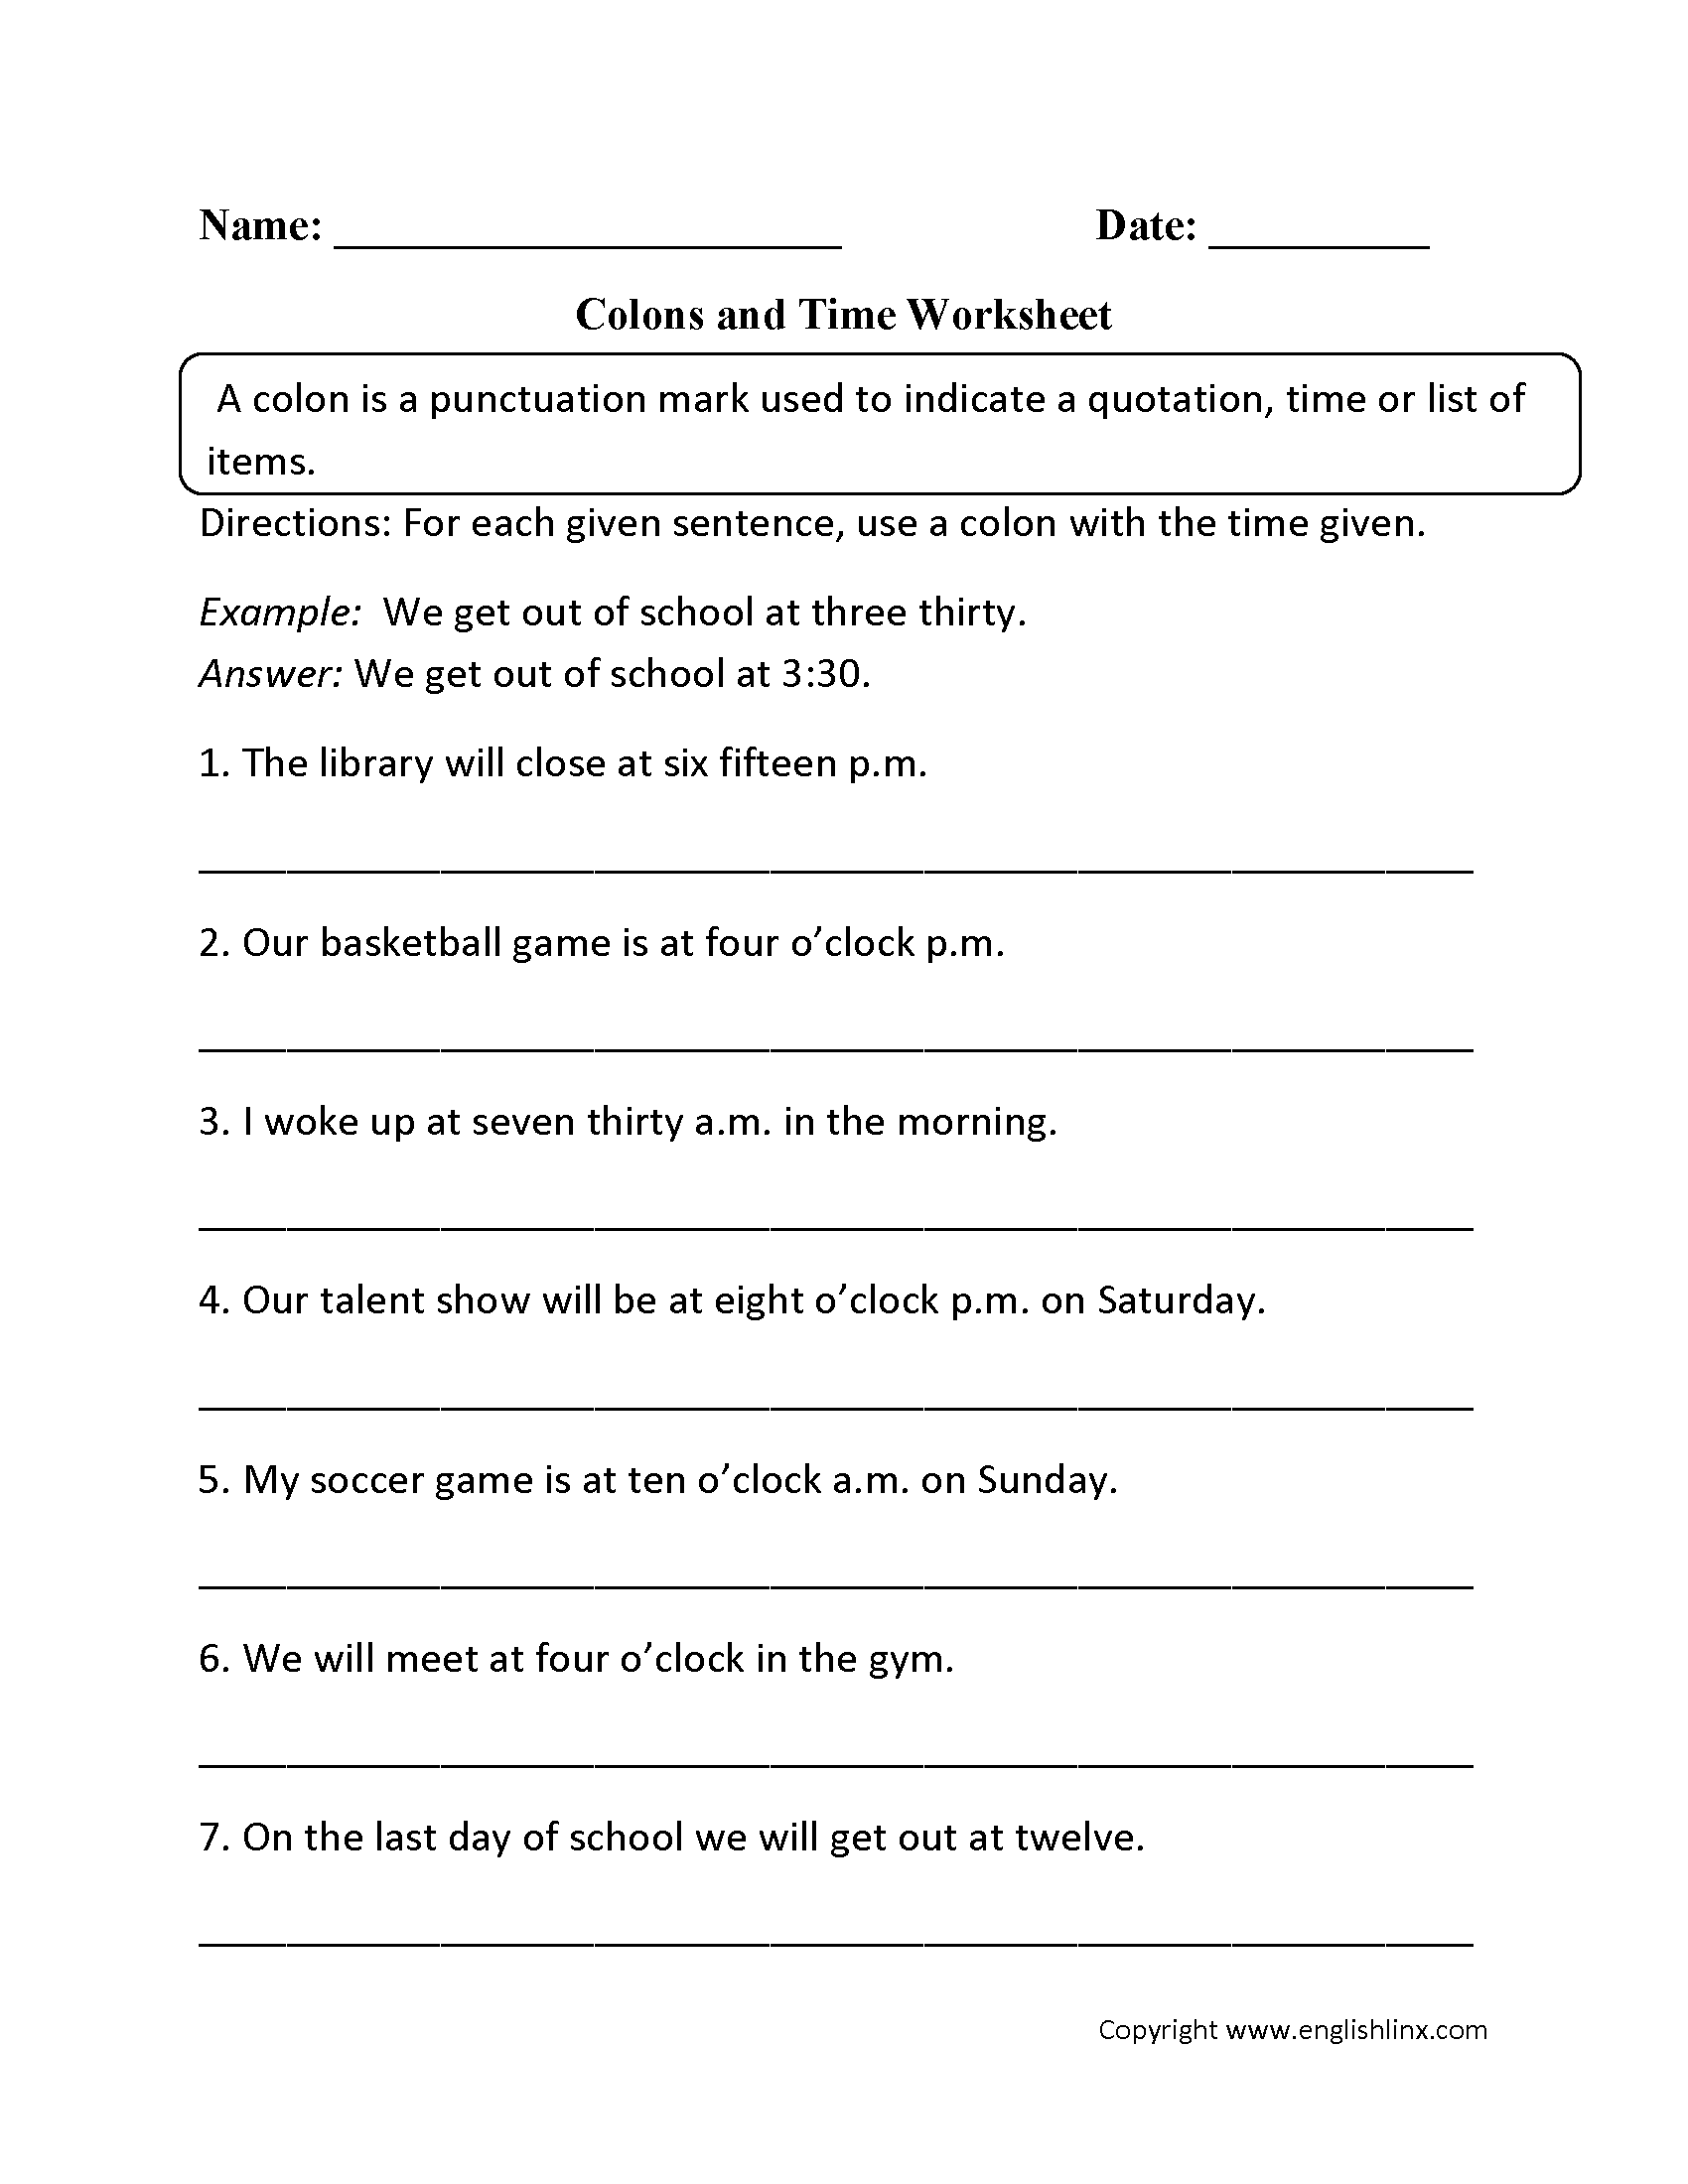 Grammar worksheet on commas comma exercises worksheets spelling and grammar worksheets commas in a series worksheet